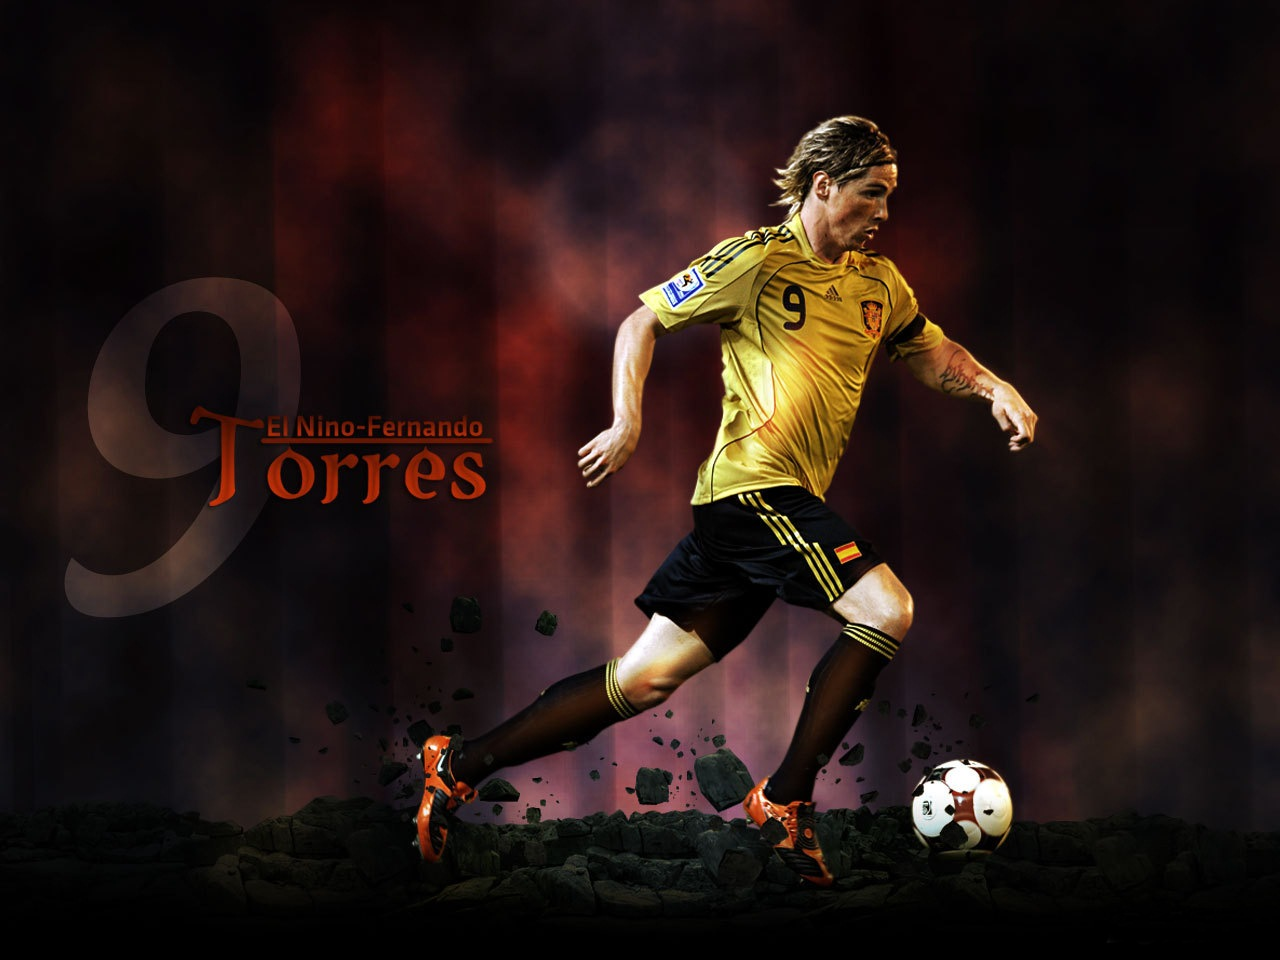 Fernando Torres Latest HD Wallpapers 2013 All About HD 1280x960